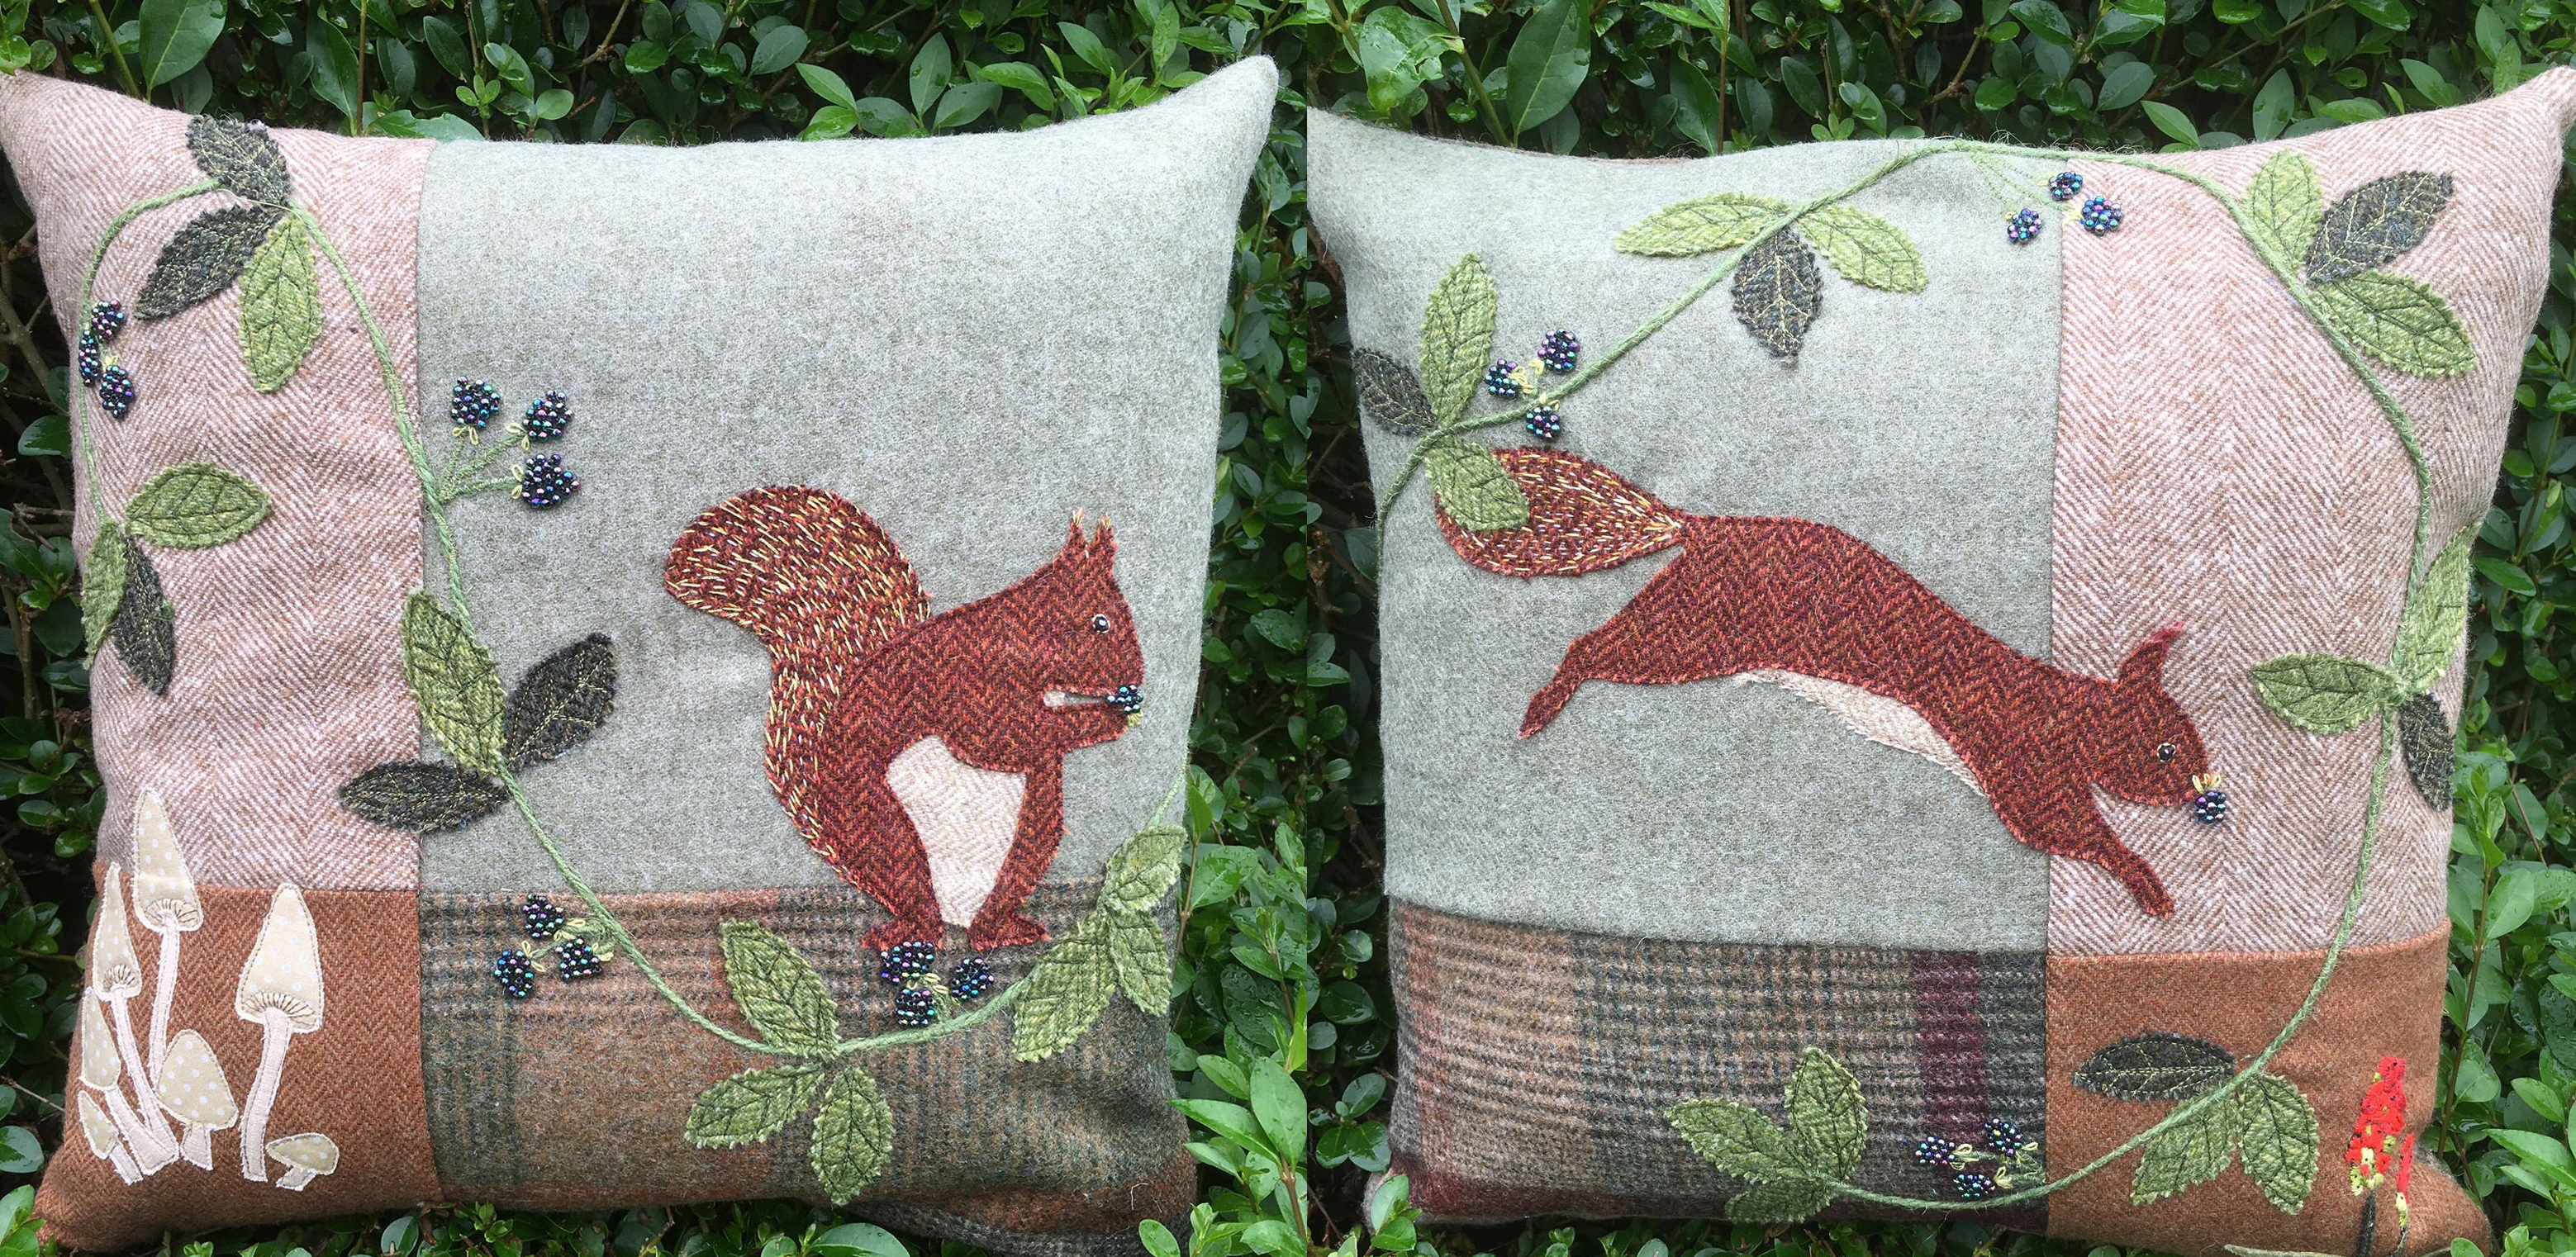 Squirrel cushion kit